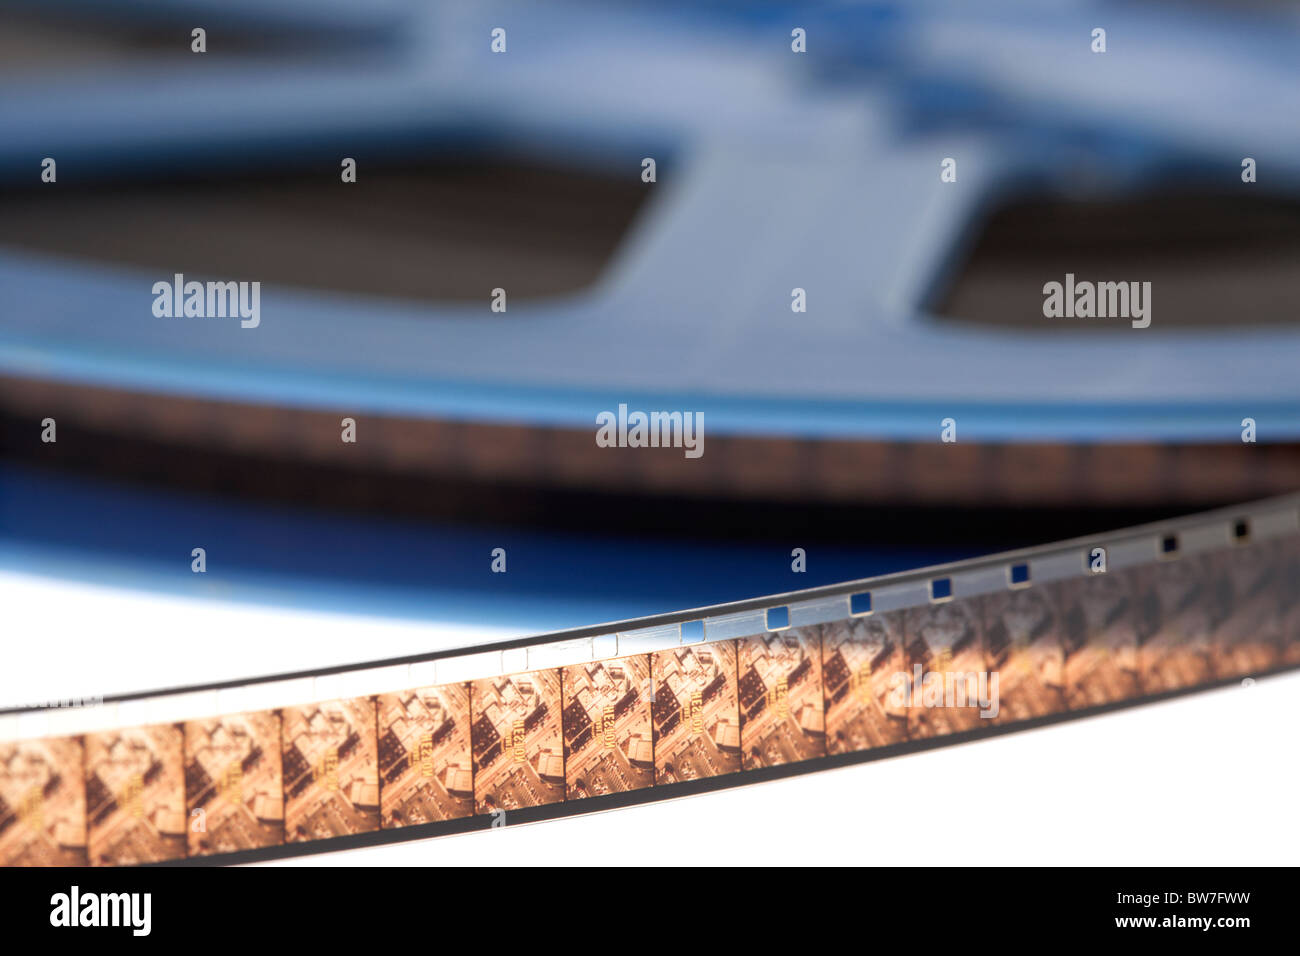 Movie Frames Stock Photos & Movie Frames Stock Images - Alamy